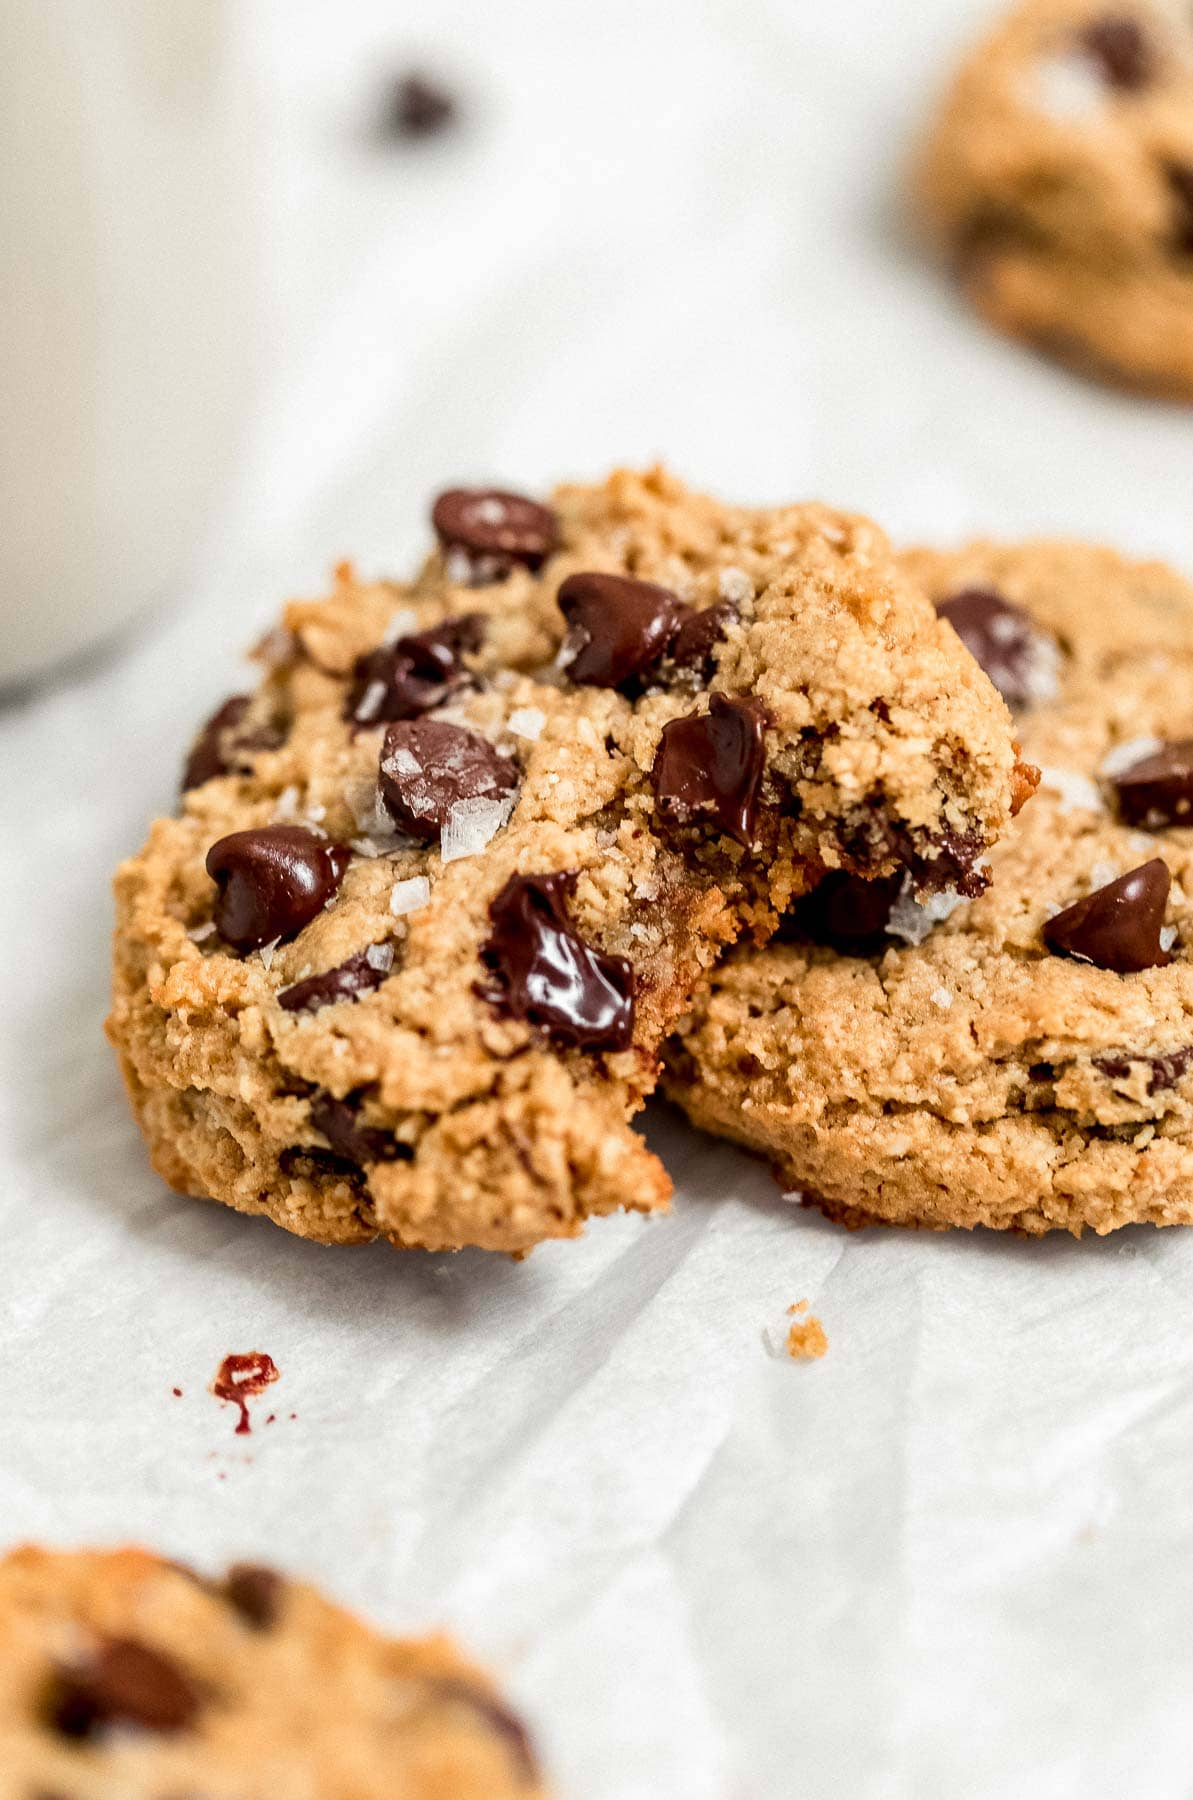 Melted chocolate chip dripping down a healthy cookie.